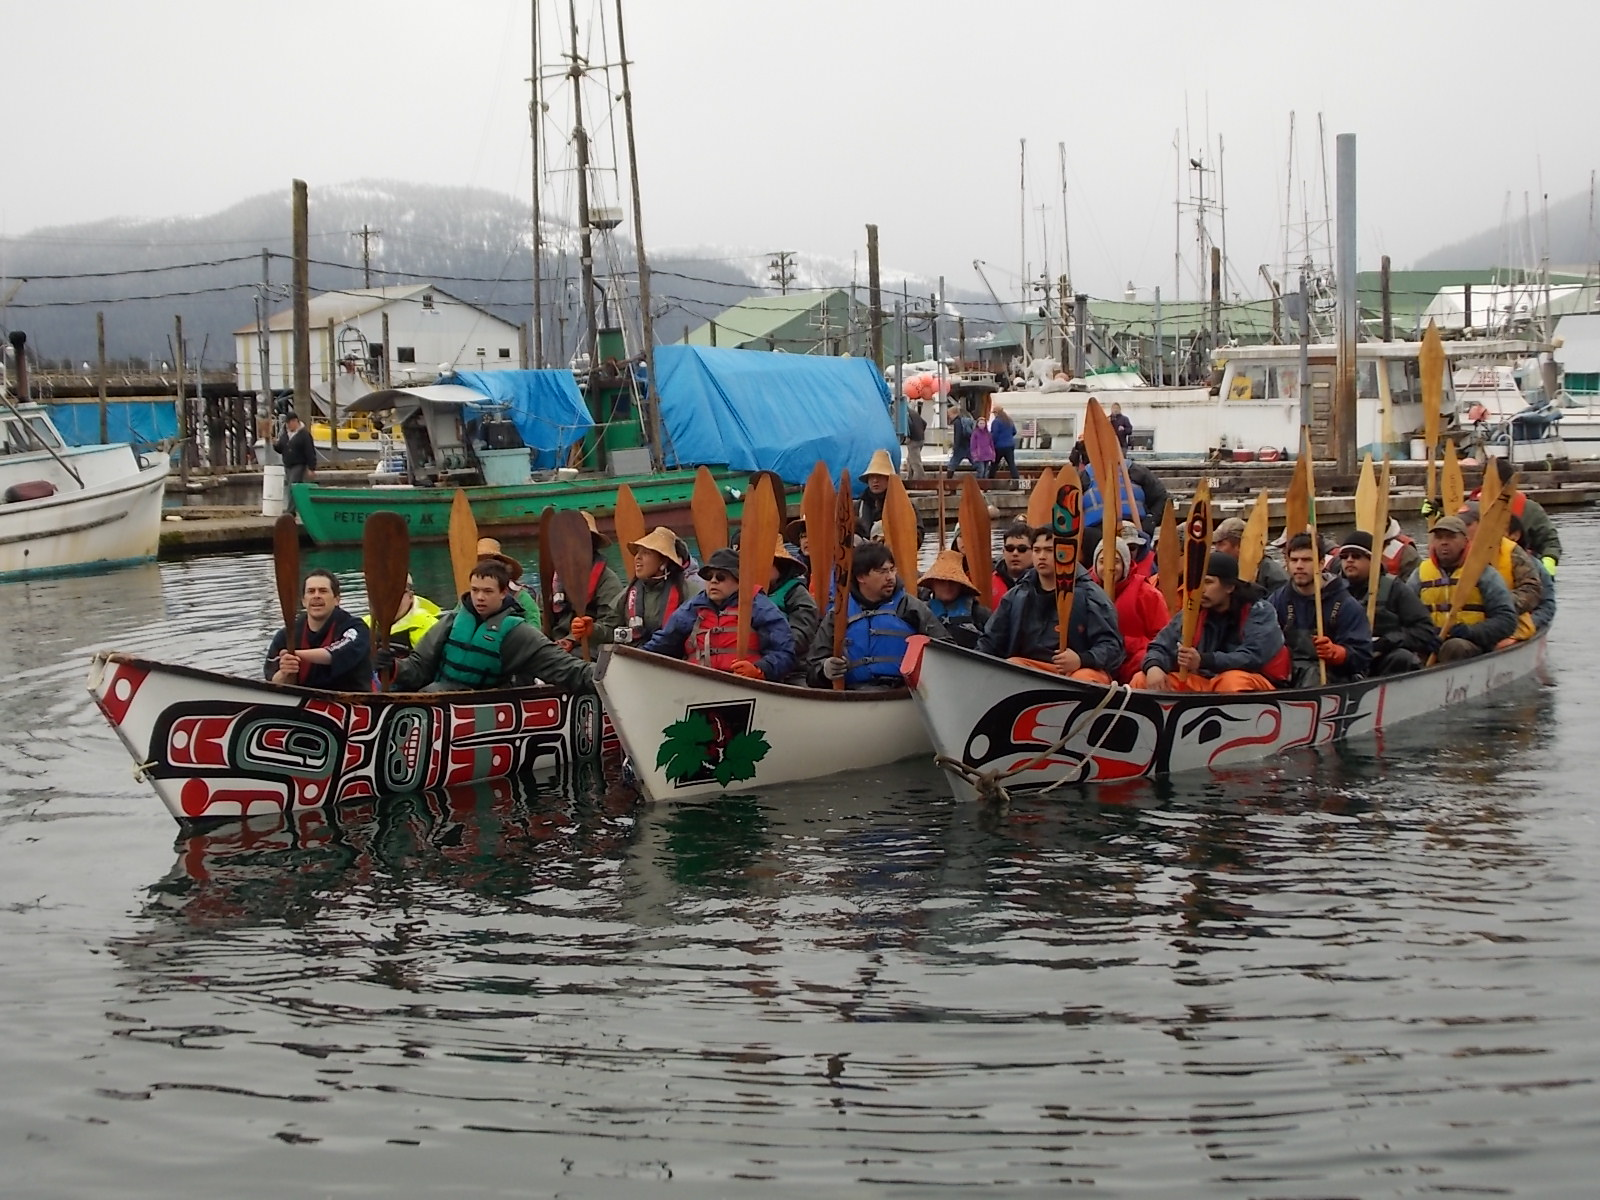 Canoe voyage helps build excitment for upcoming celebration